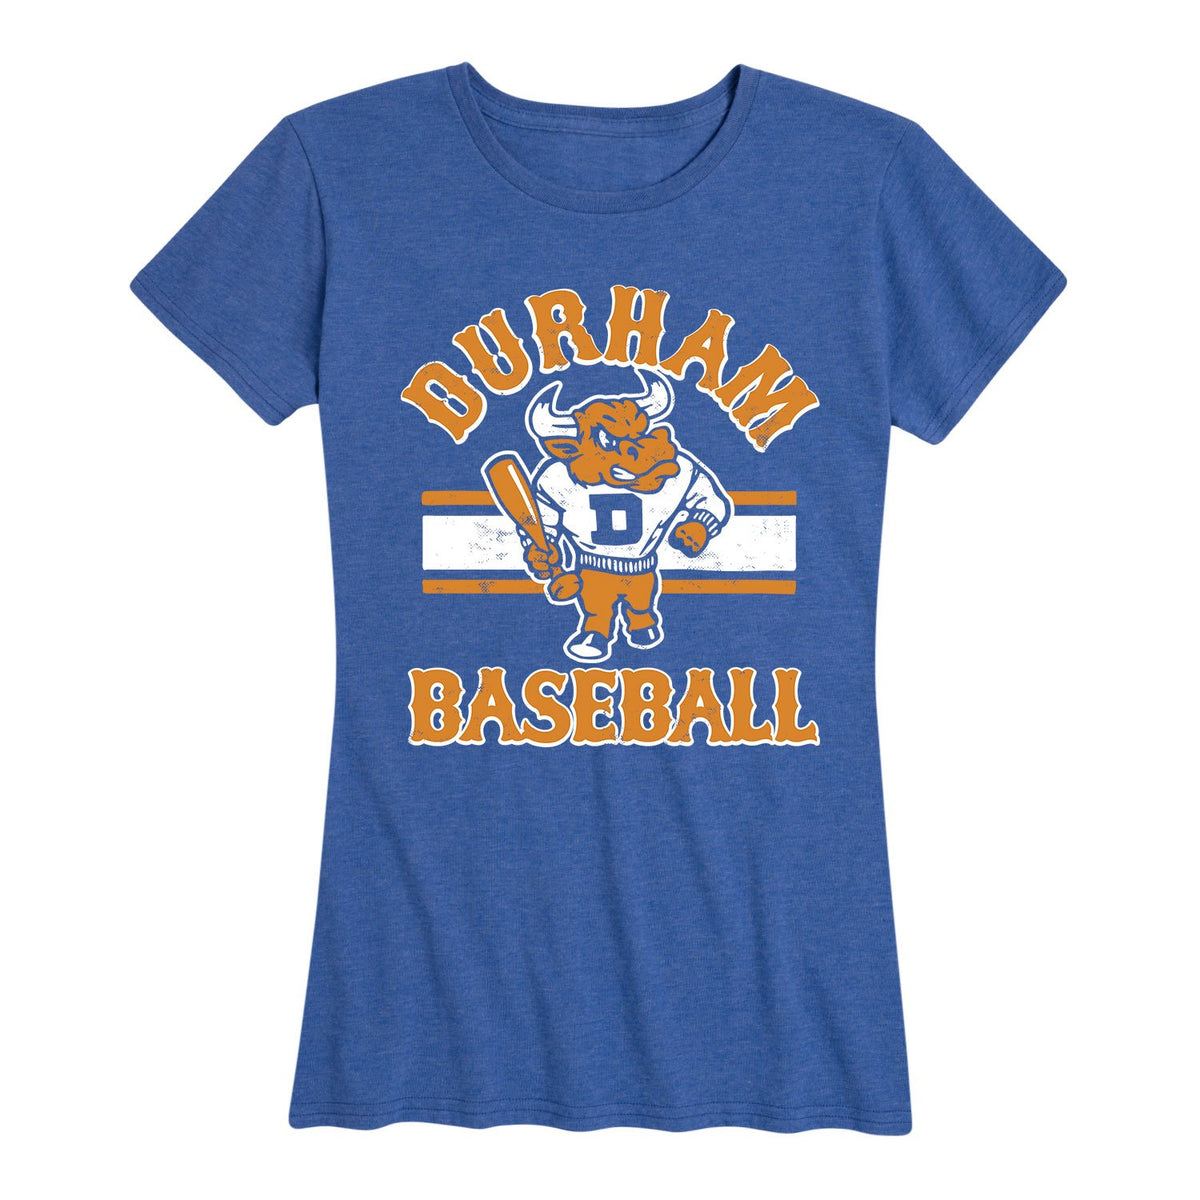 Durham Baseball - Women's Short Sleeve T-Shirt